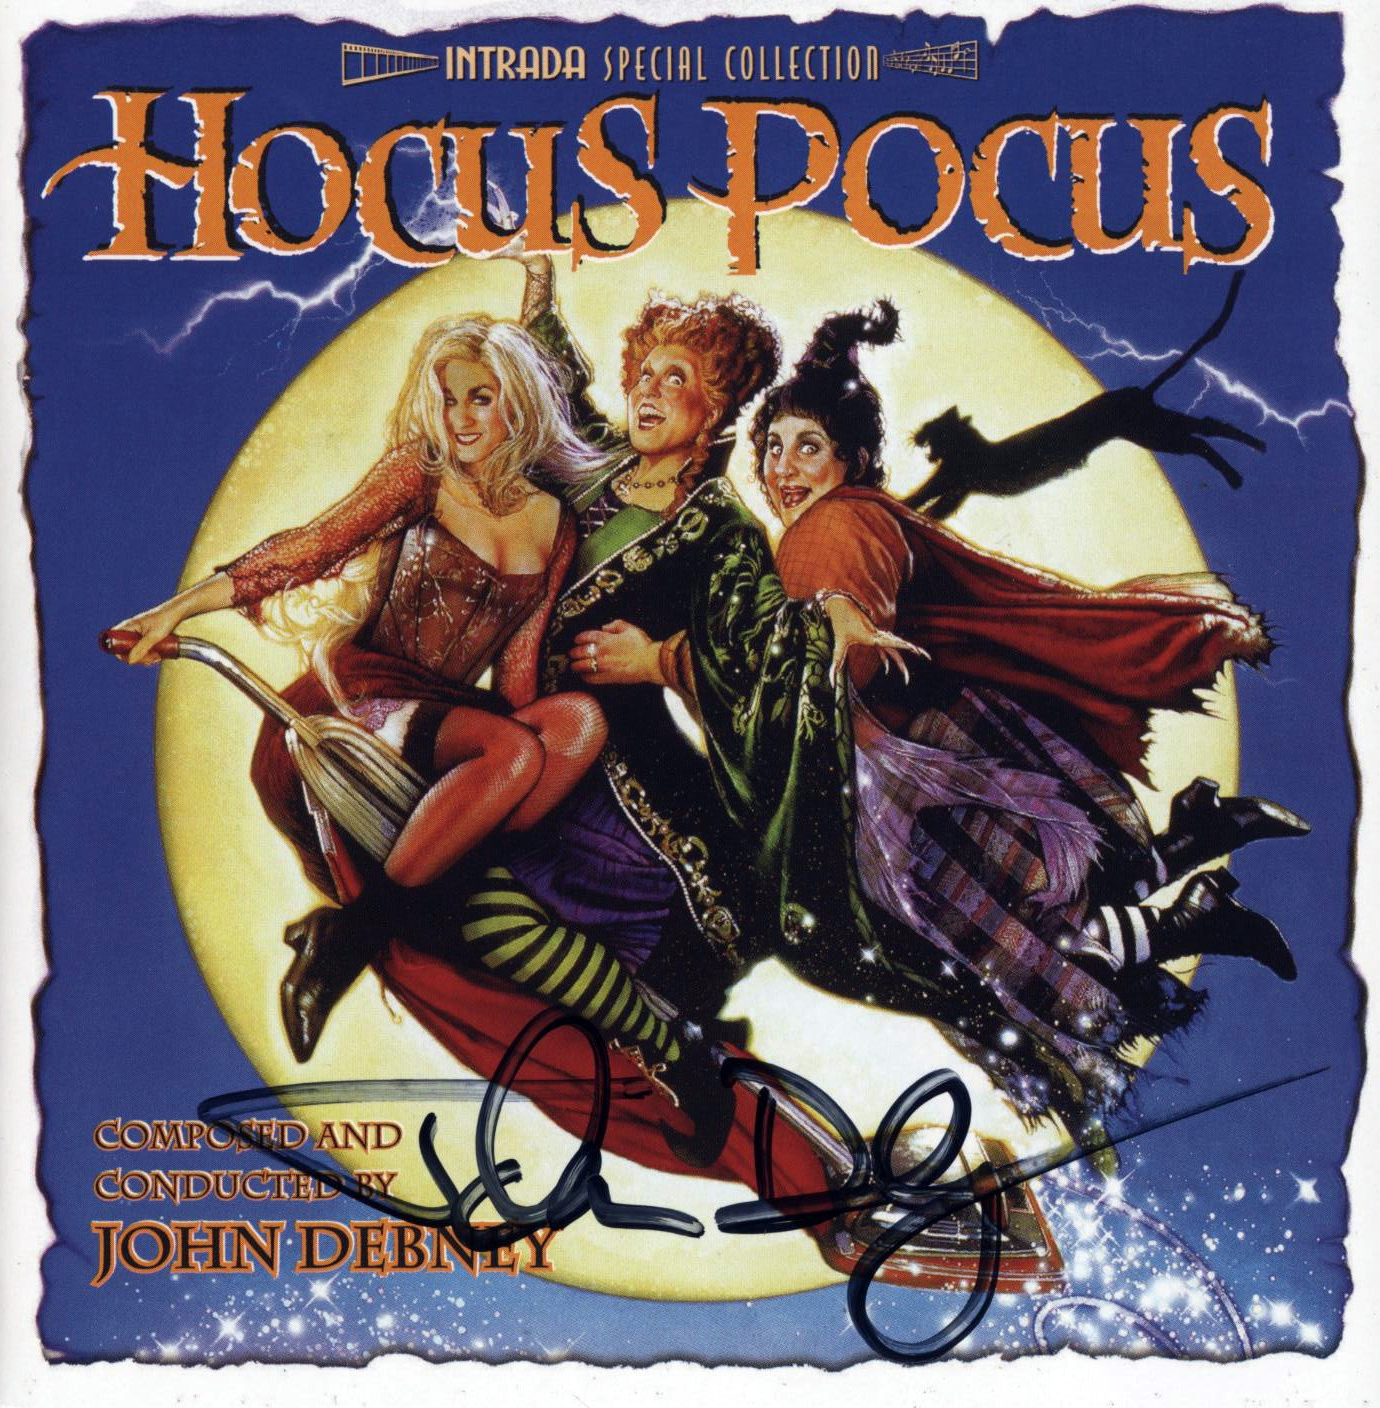 hocus pocus Terexin, leader of the council of wizards, is sending the young sorcerer, hocus, on a special mission to prove his worthiness.